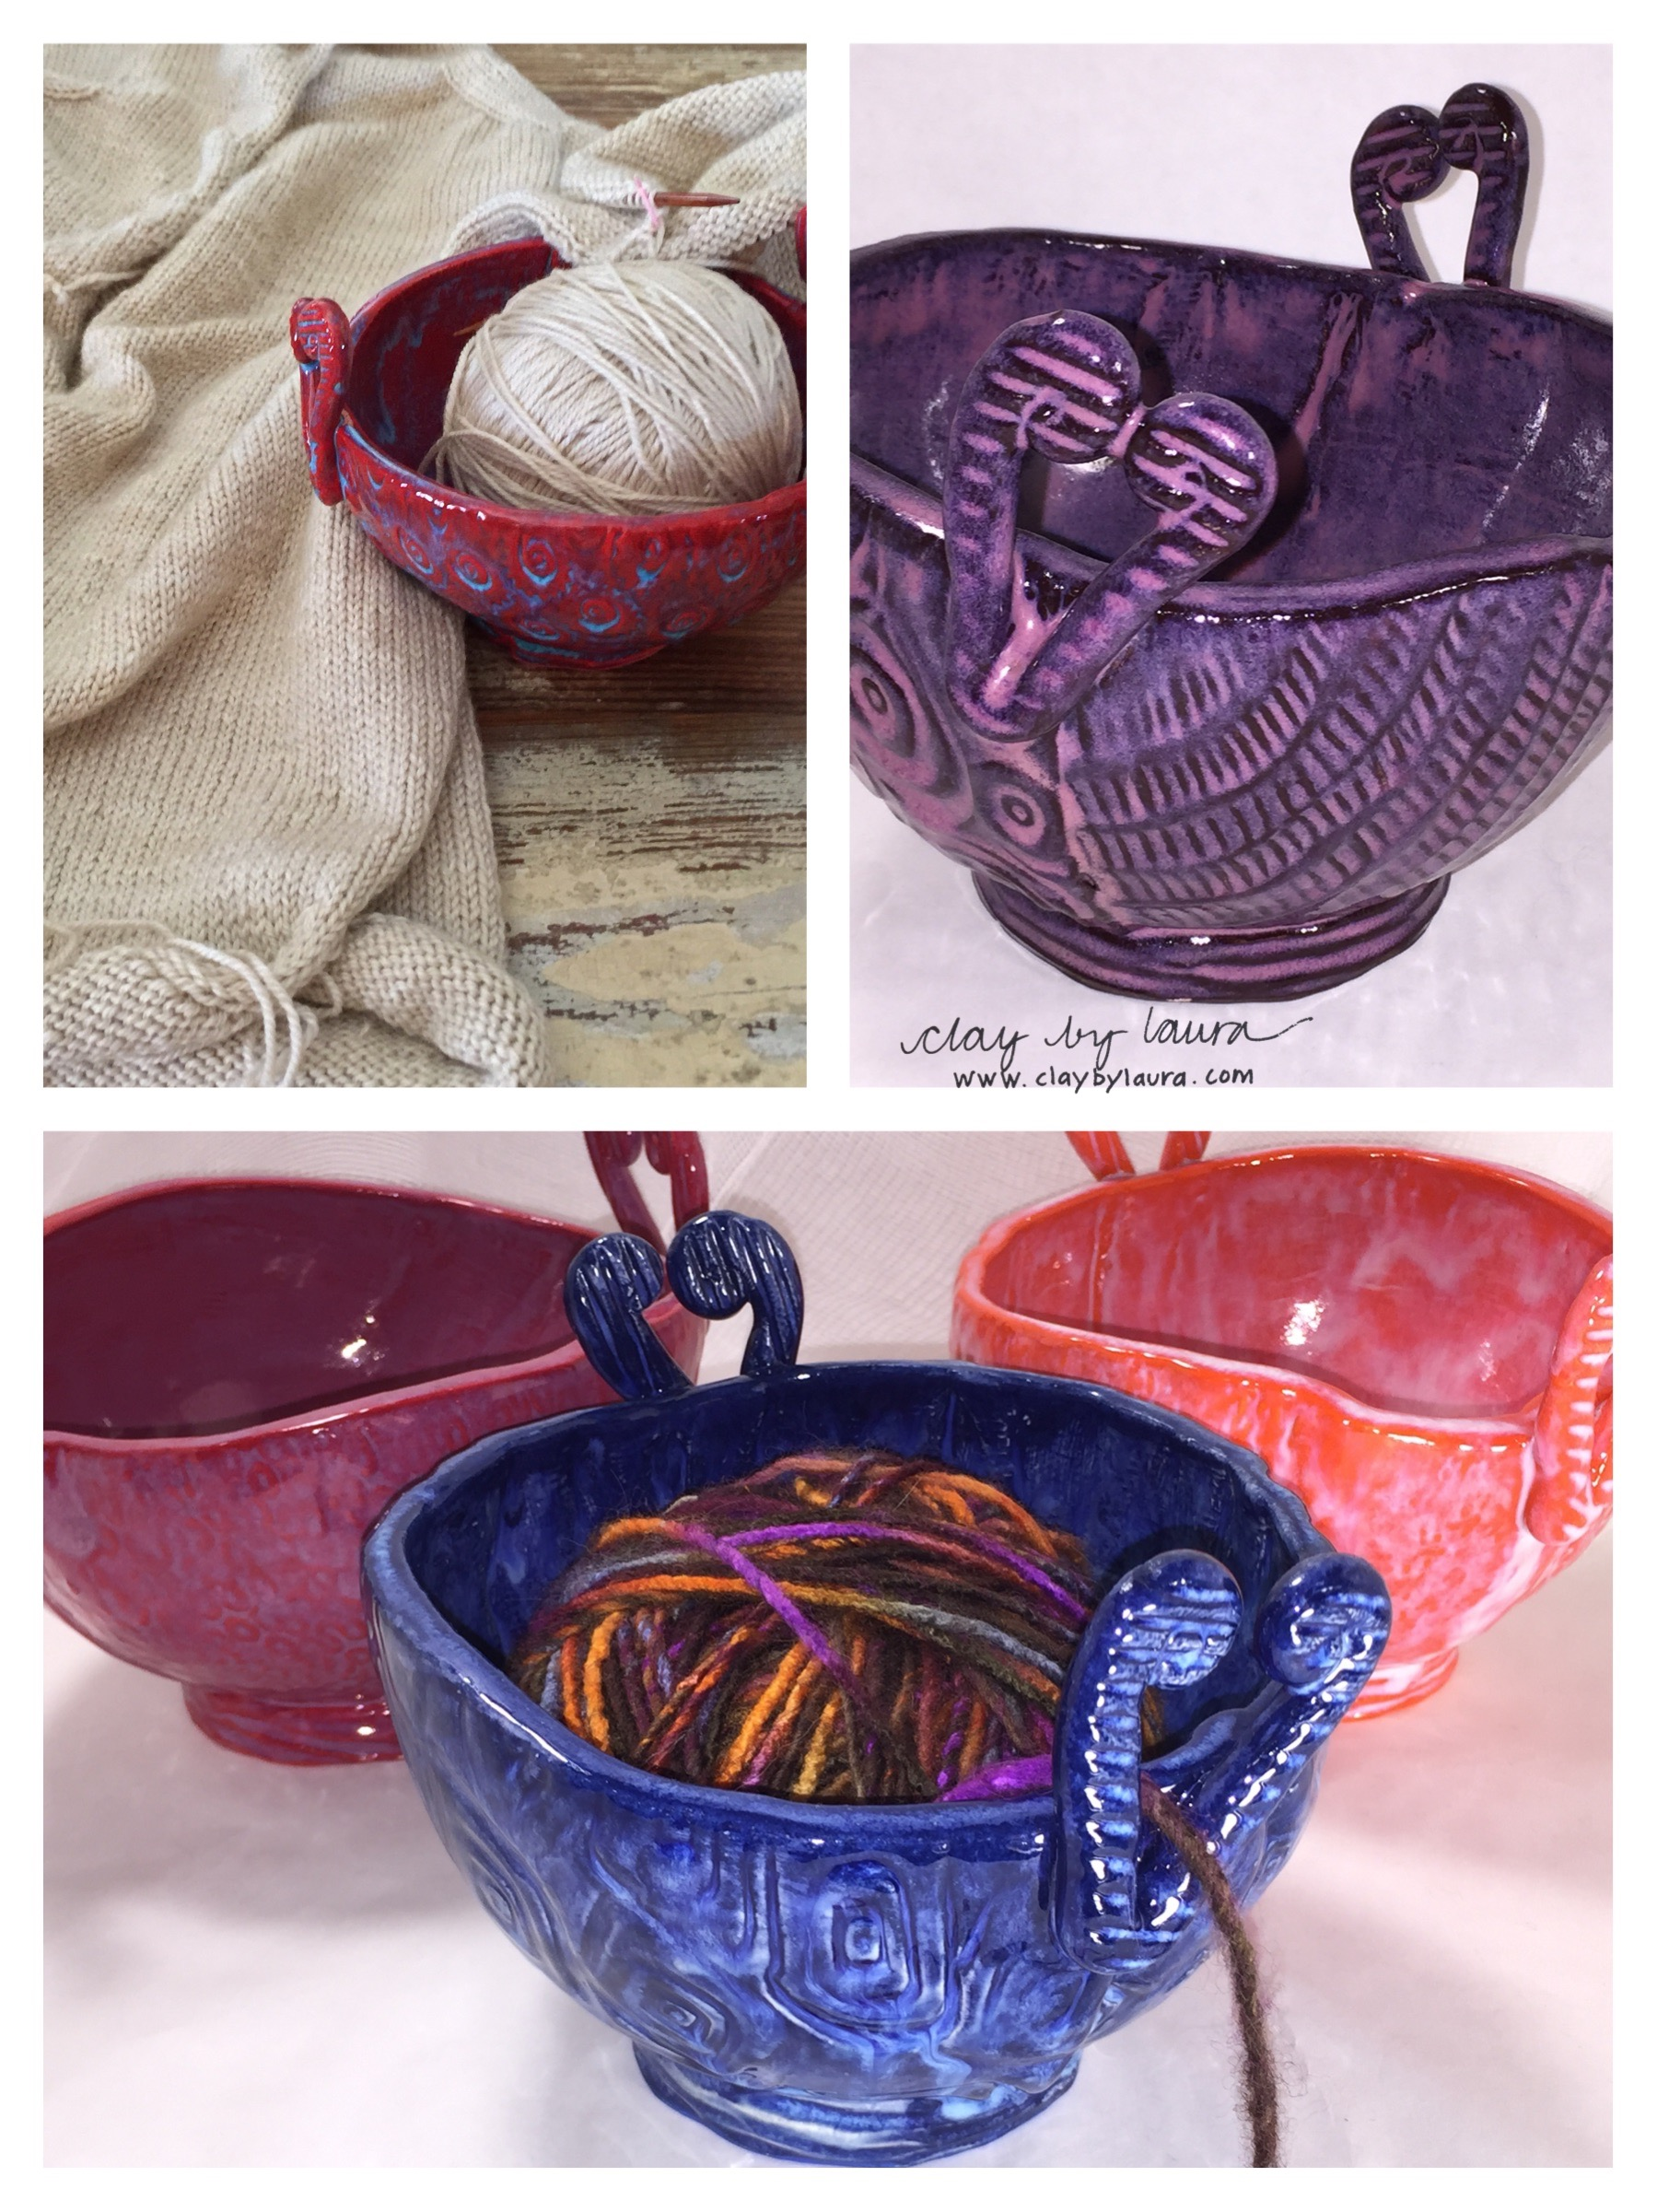 I've been catching up on some of my knitting projects these last few winter weeks. It's another passion I enjoy. I find it meditative and engaging at the same time. The unique design of my yarn bowls are based on my experience as a knitter. Most of the clay yarn bowls I've seen have a slit cut into them for guiding the yarn -- a design flaw in my opinion. My bowl shape cups the yarn, has two heart-shaped 'feeders' for multiple yarn colors and can be used for snacks or knitting accessories when not in use for stitching. In 2016, I'll work on a slightly larger version to fully accommodate two large hanks of yarn.